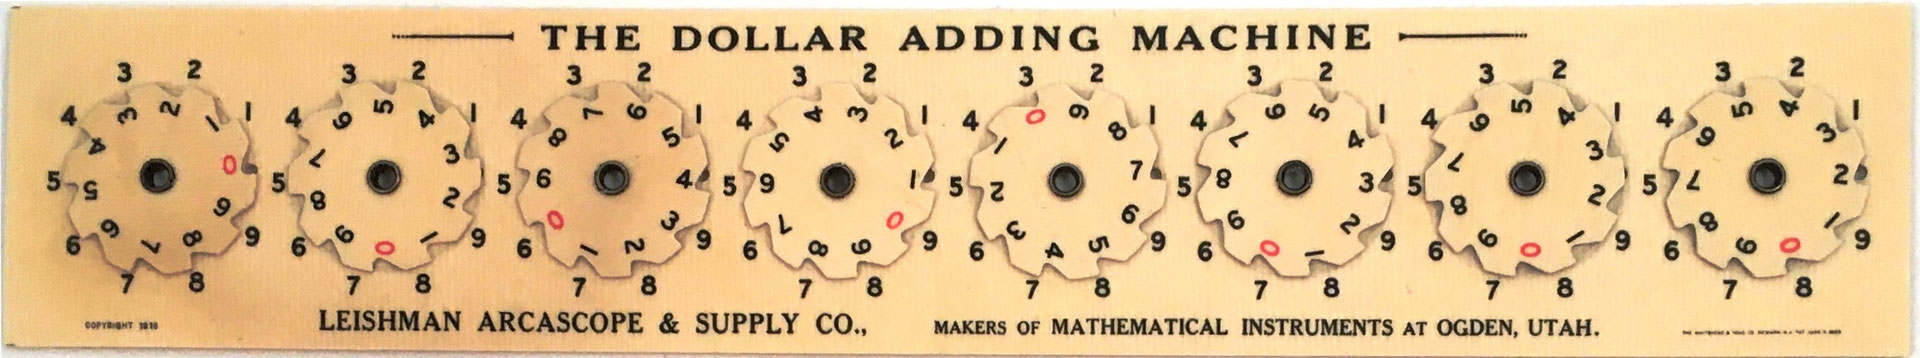 The Dollar Adding Machine, fabricado por Leishman Arcascope & Supply Co, año 1916, 24x4.5 cm